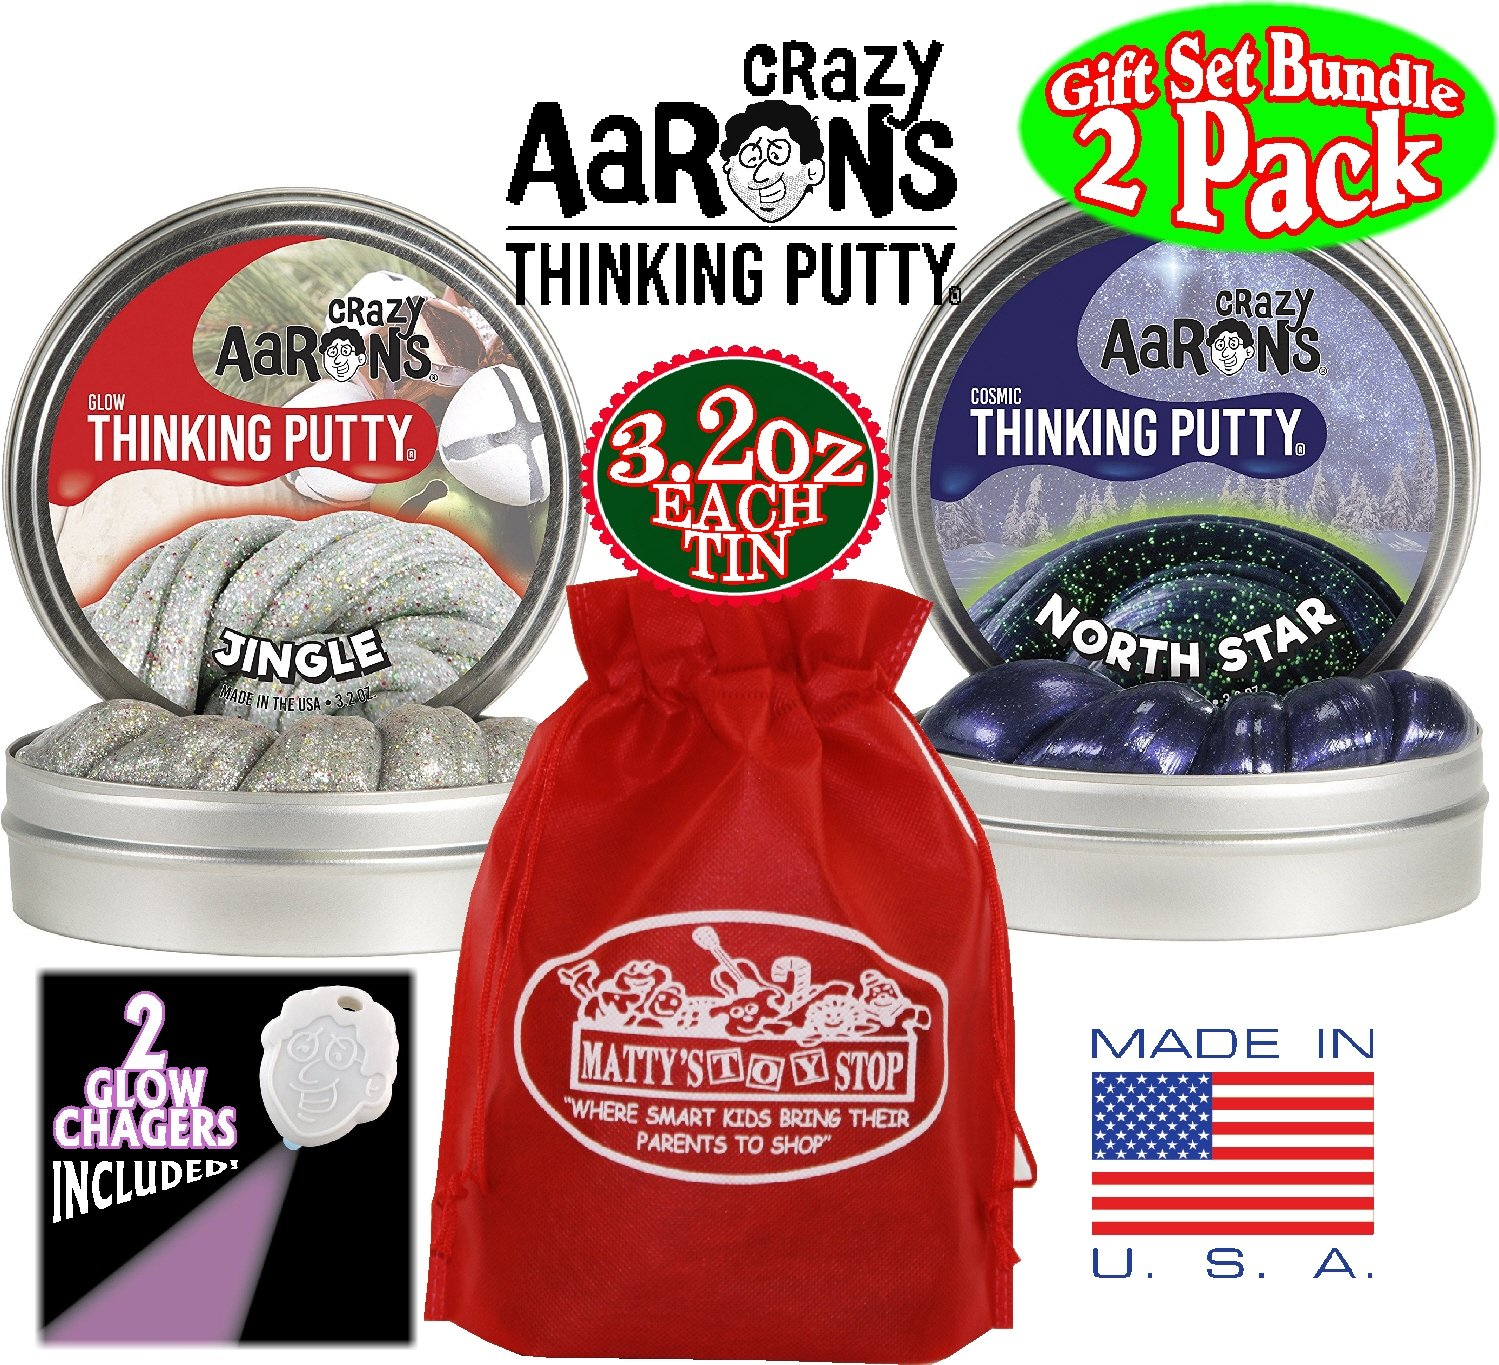 Crazy Aaron's Thinking Putty Holiday (Christmas) Tins ''Jingle'' Glow in the Dark w/Charger, ''North Star'' Cosmic Glow in the Dark w/Charger & Exclusive Storage Bag - 2 Pack